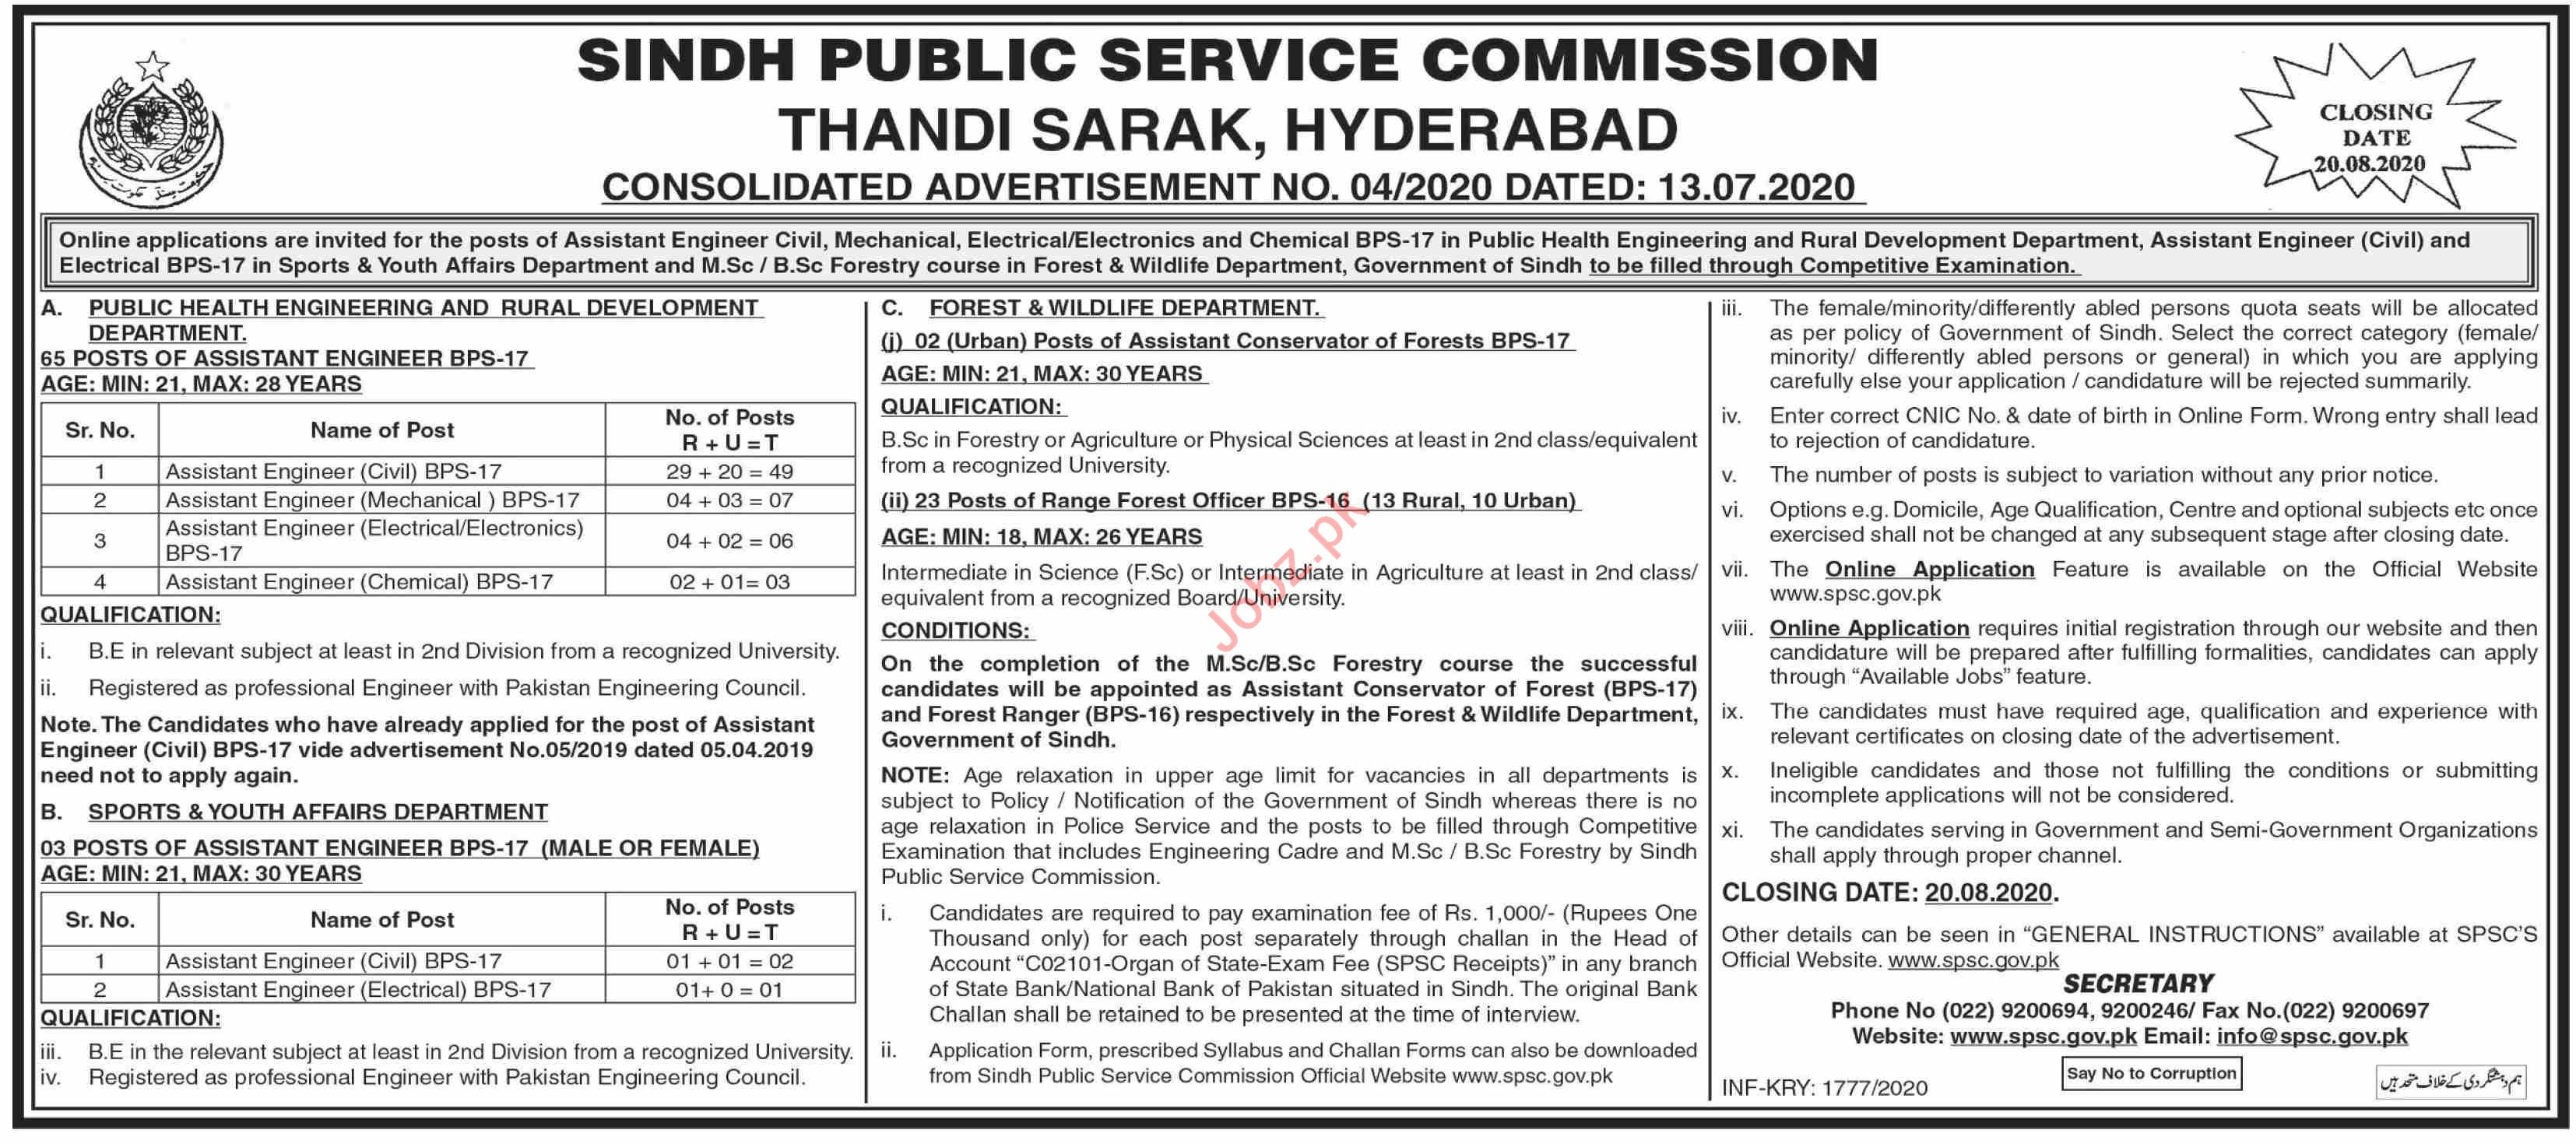 SPSC Sindh Public Service Commission Jobs for Asst Engineers